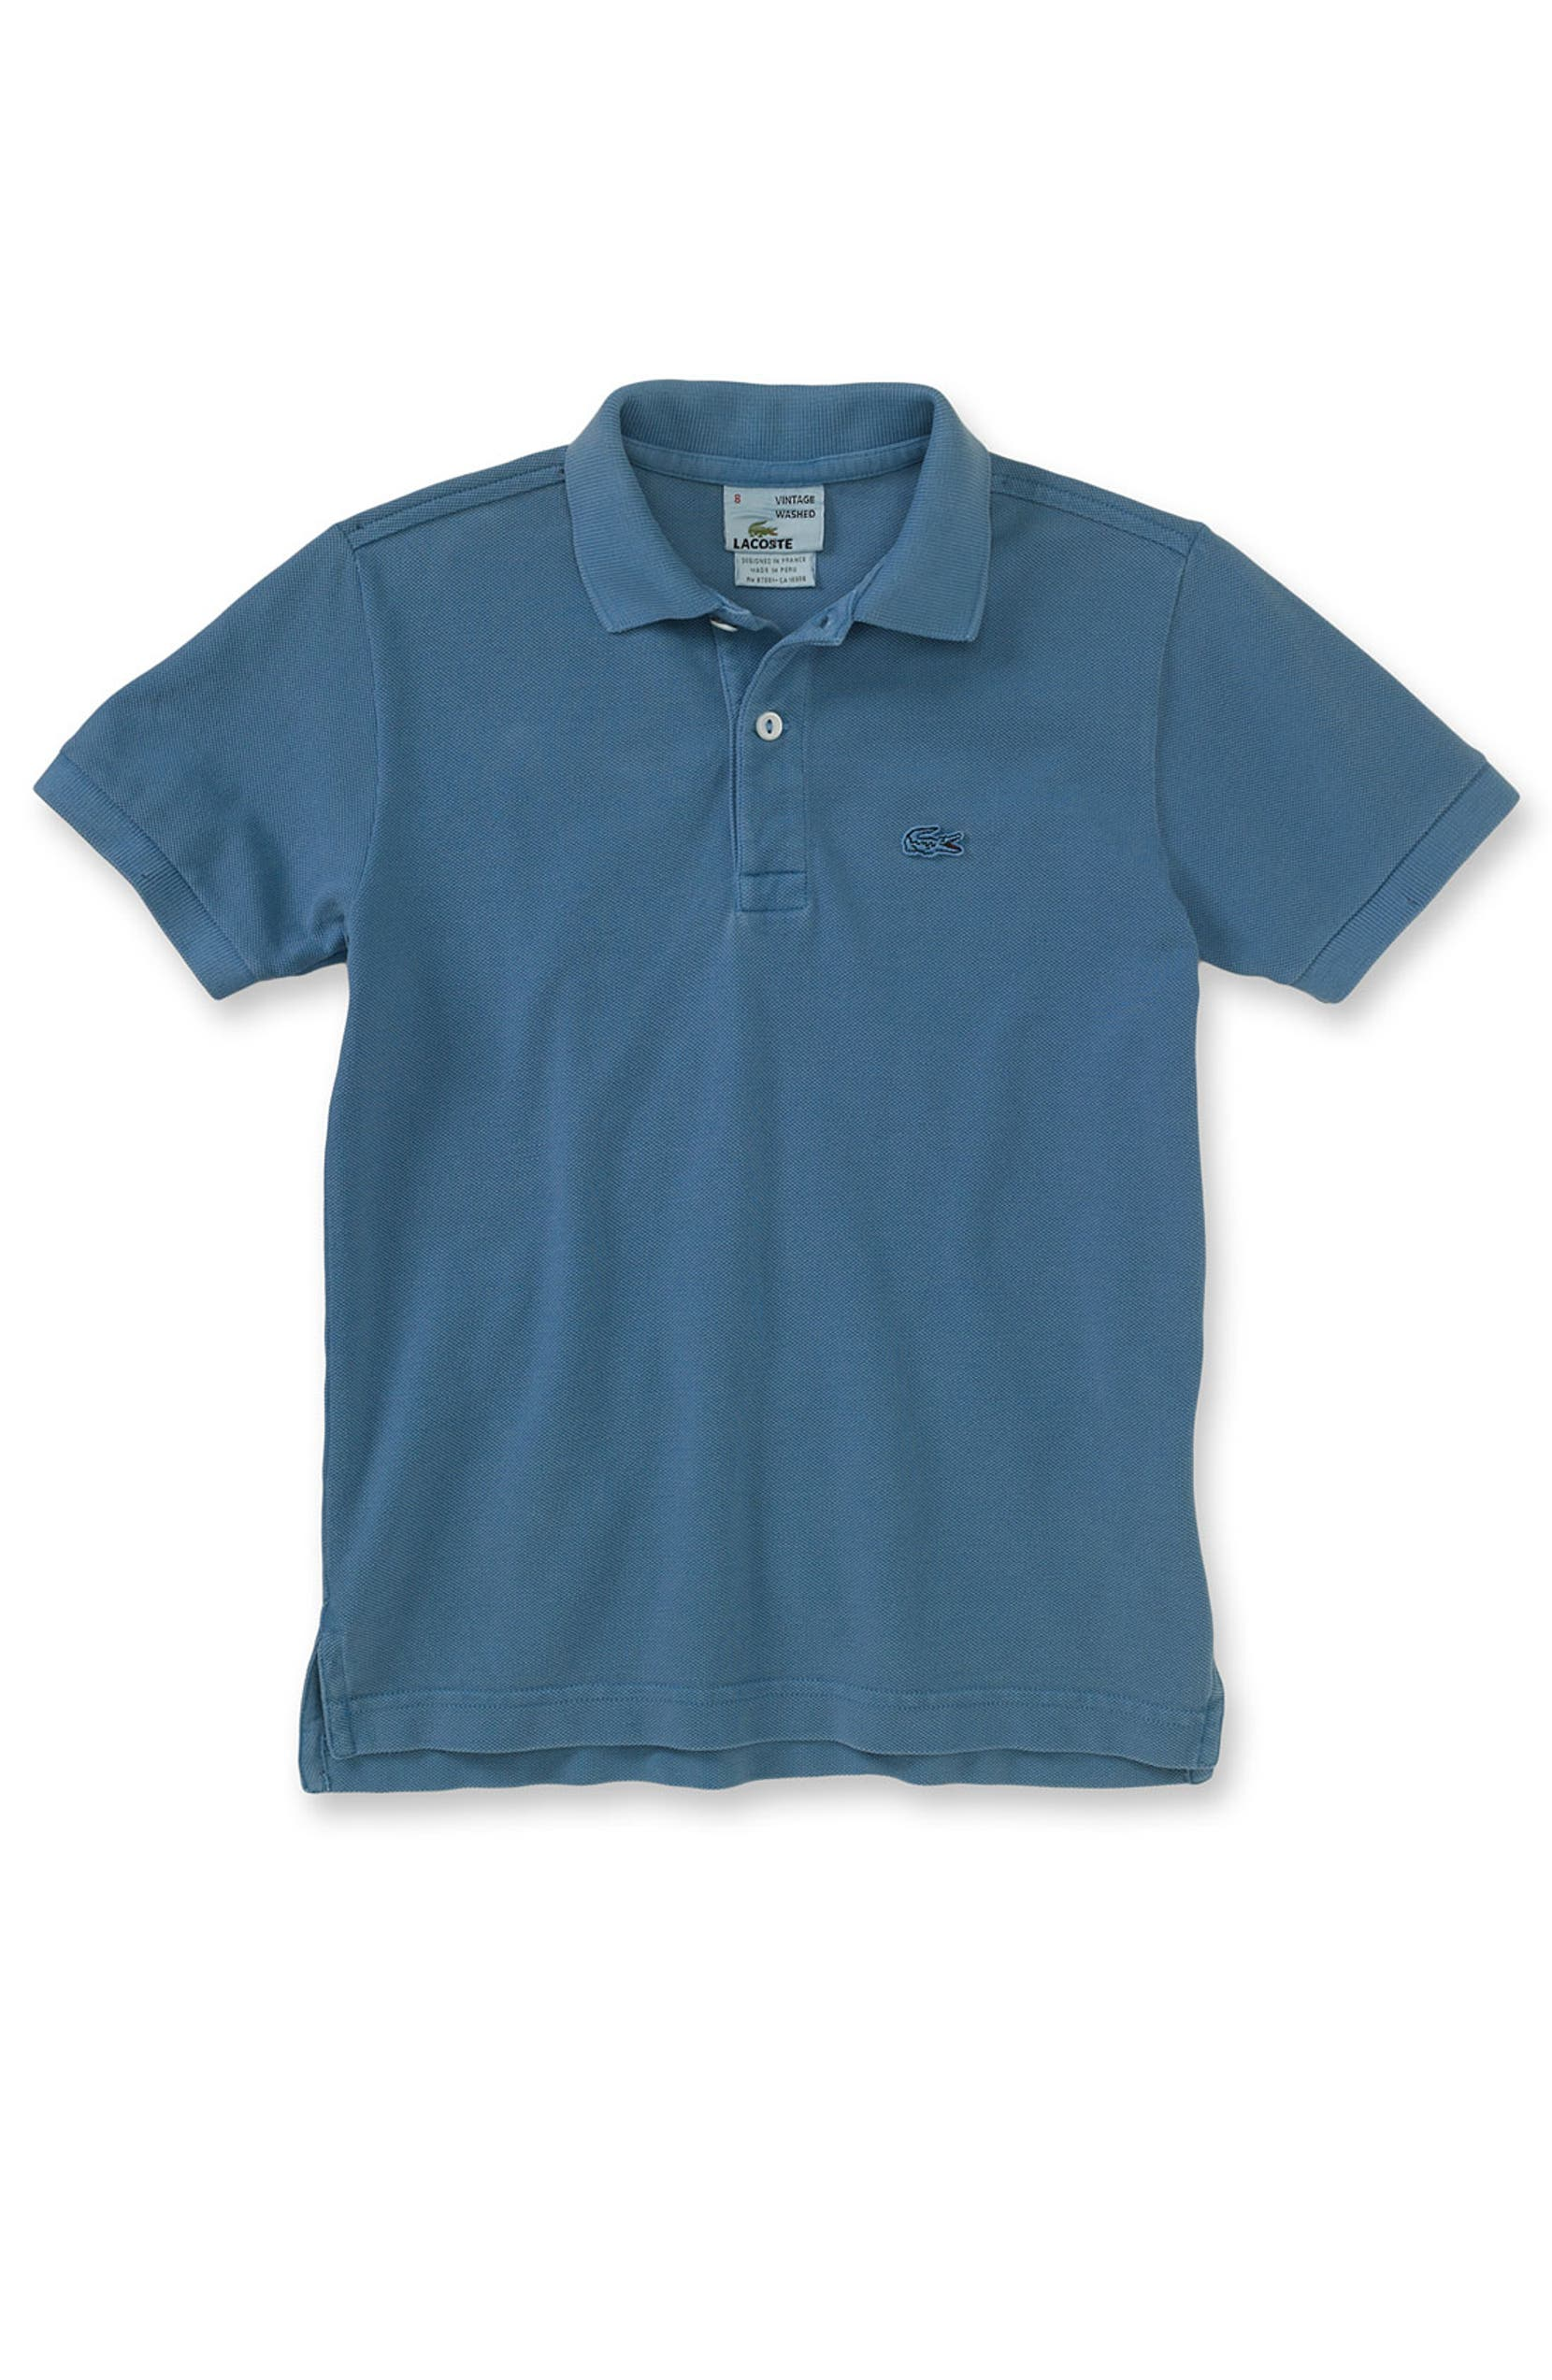 b6bfc354a26 Lacoste Vintage Washed Polo Shirts – EDGE Engineering and Consulting ...